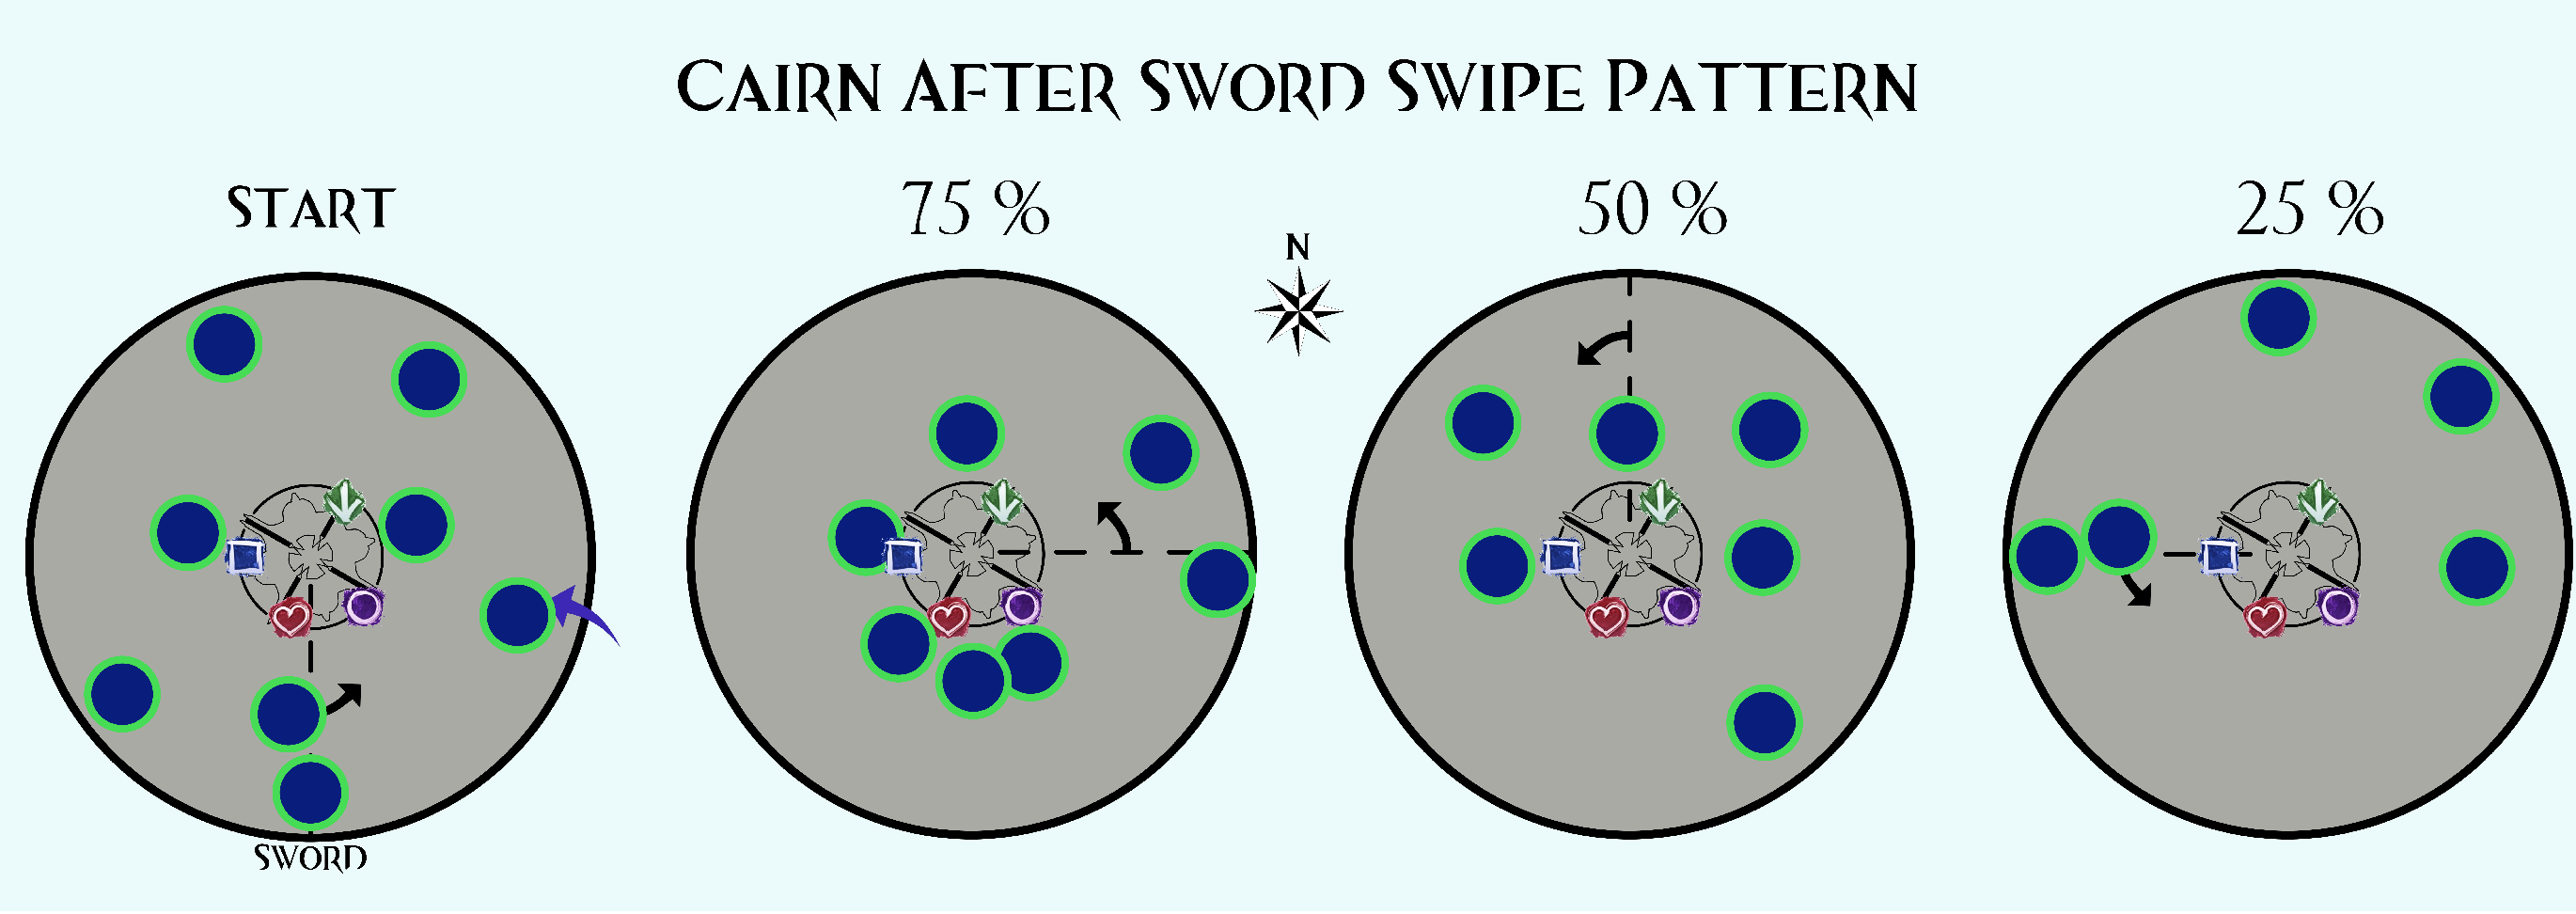 Cairn Sword Pattern.png